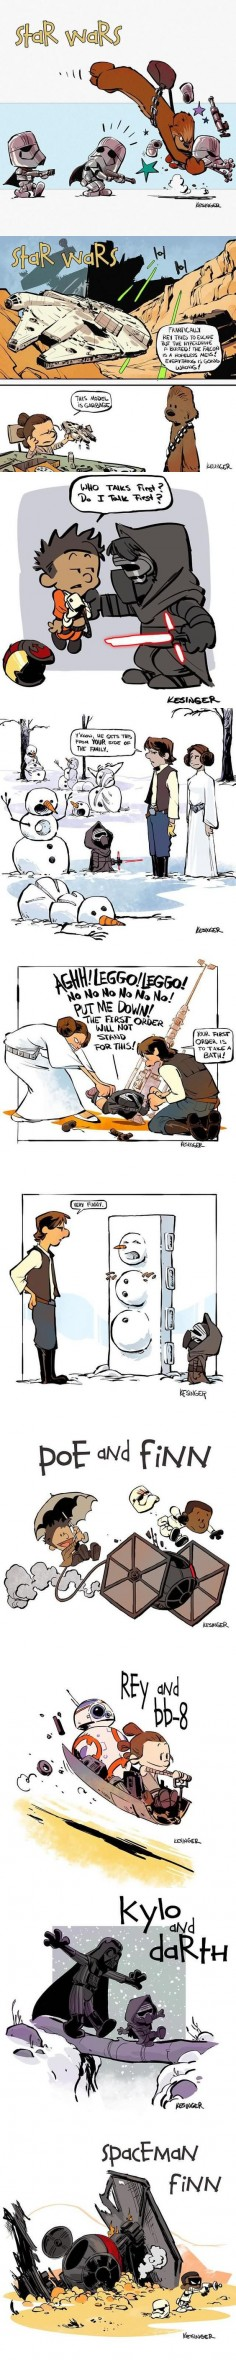 Calvin & Hobbes style Star Wars: The Force Awakens - 9GAG